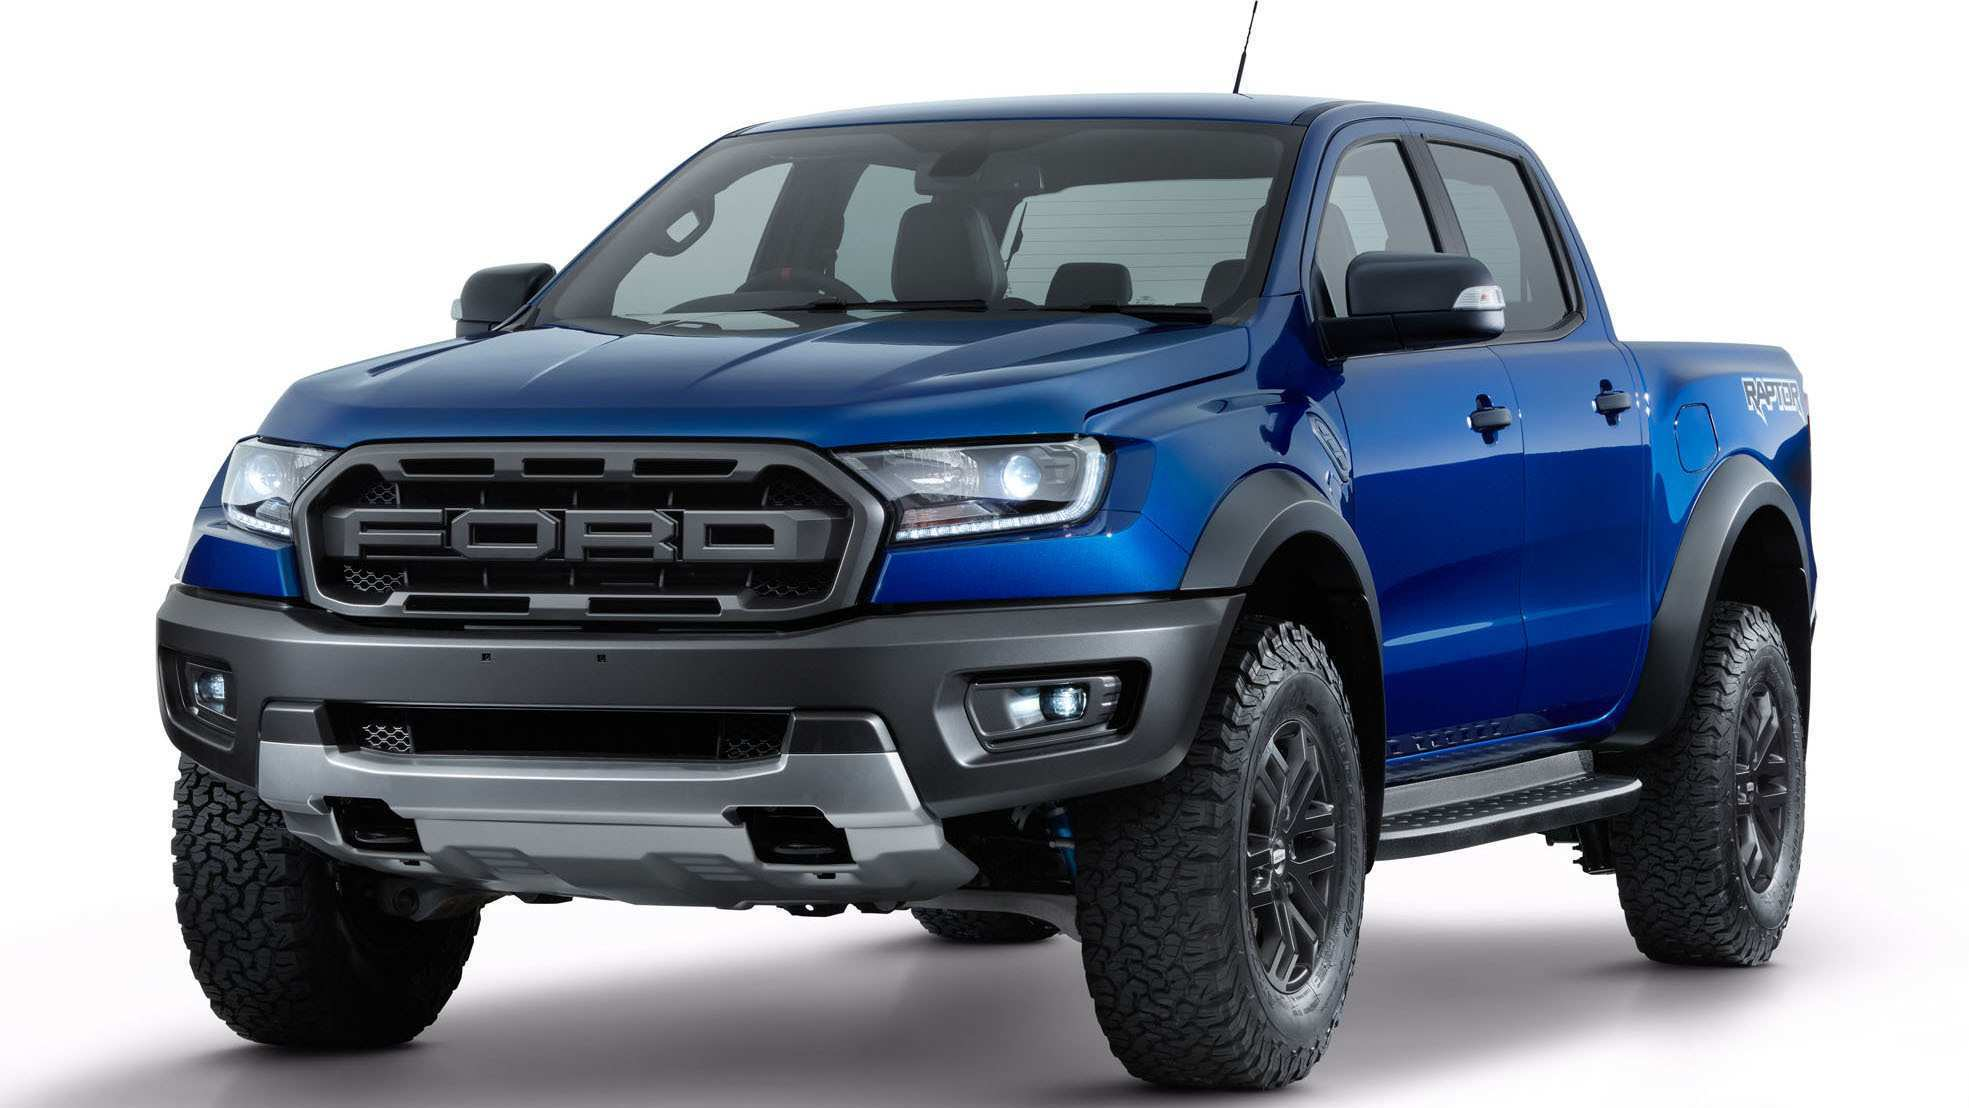 77 The Best F2019 Ford Ranger Release